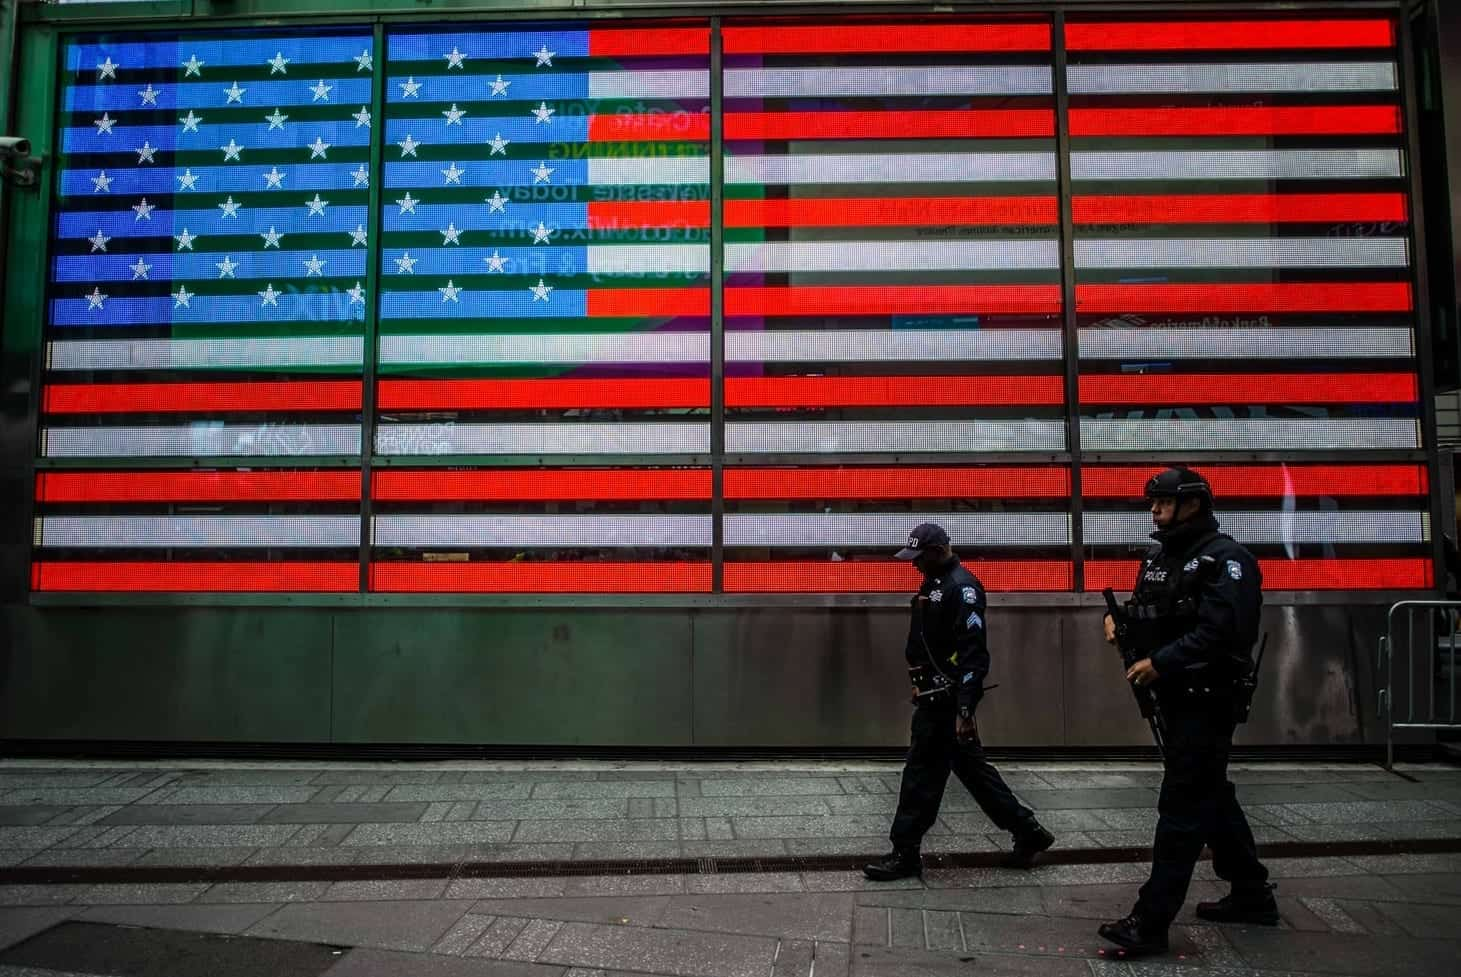 Two NYPD officers walk in front of an American Flag mural.